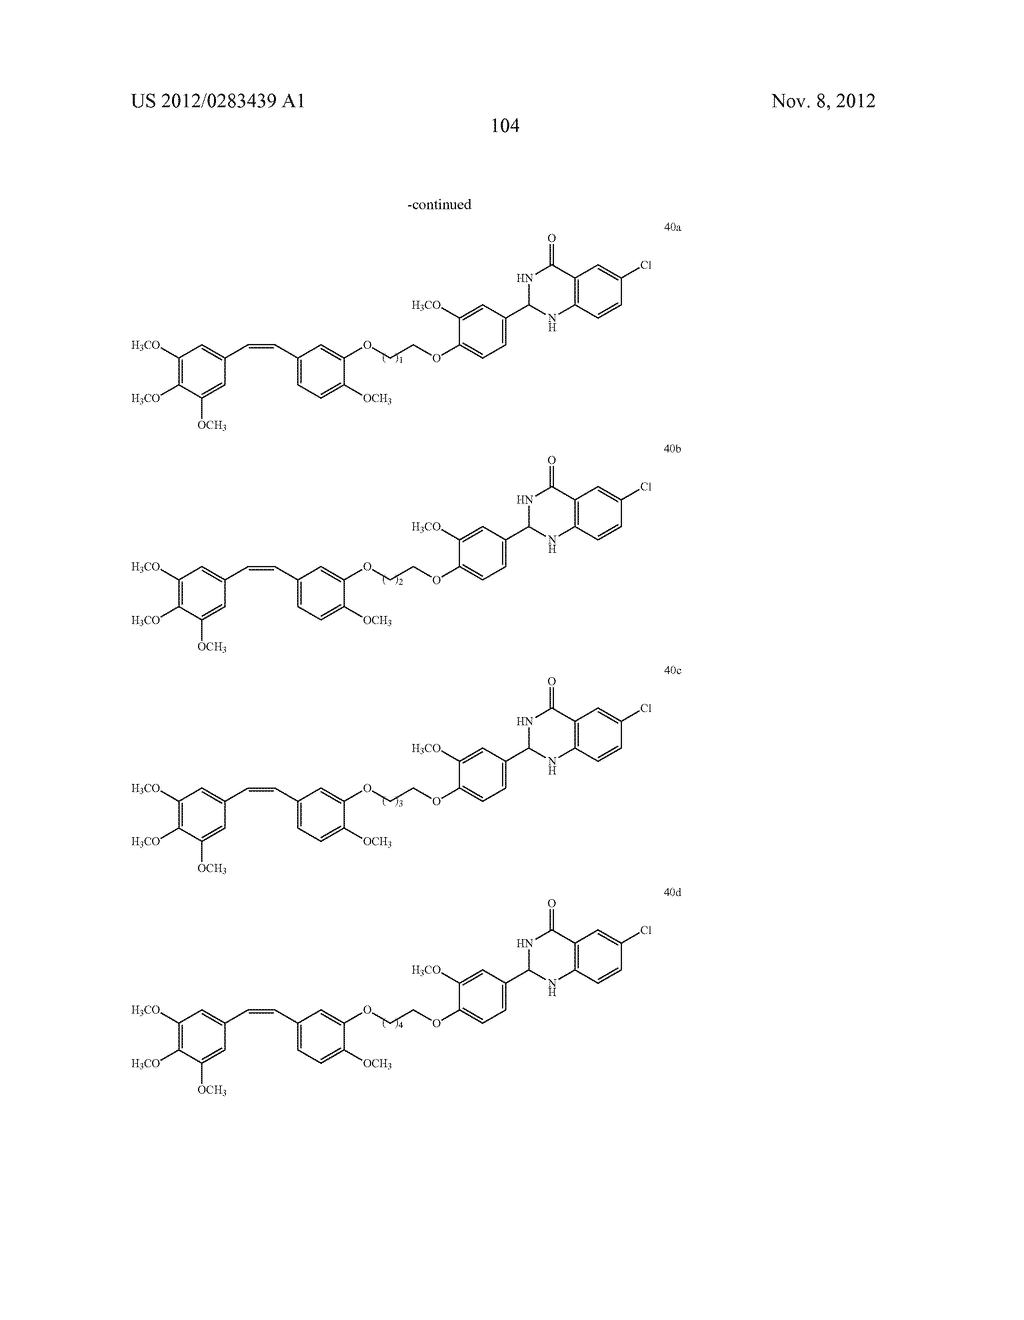 ISOXAZOLE/ISOXAZOLINE/COMBRETASTATIN LINKED DIHYDROQUINAZOLINONE HYBRIDS     AS POTENTIAL ANTICANCER AGENTS AND PROCESS FOR THE PREPARATION THEREOF - diagram, schematic, and image 106